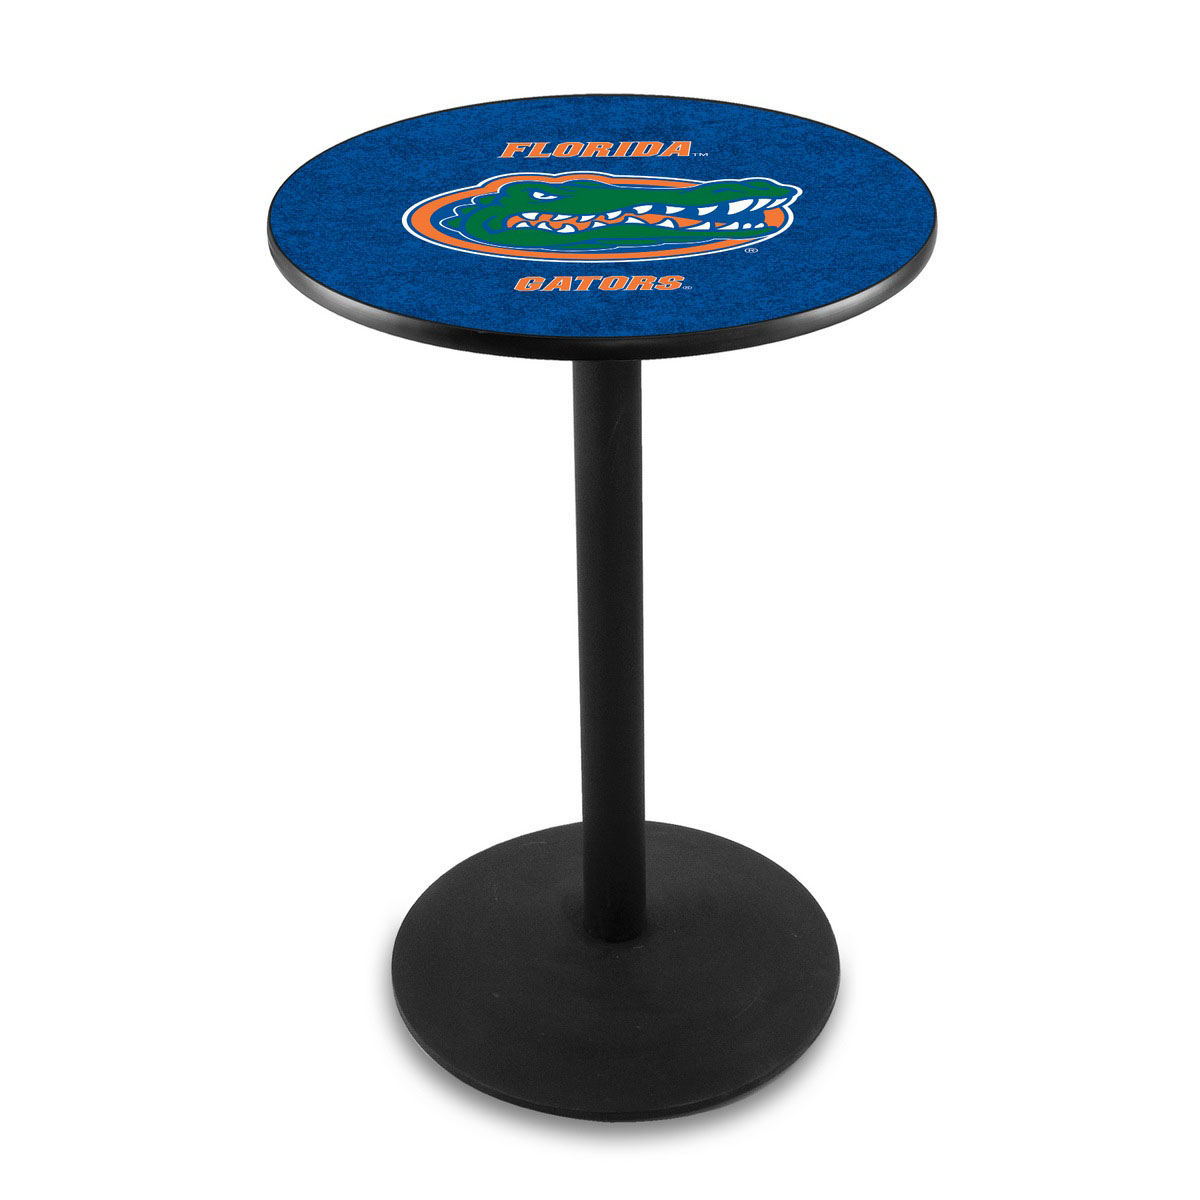 Stunning University Florida Logo Pub Bar Table Round Stand Product Photo